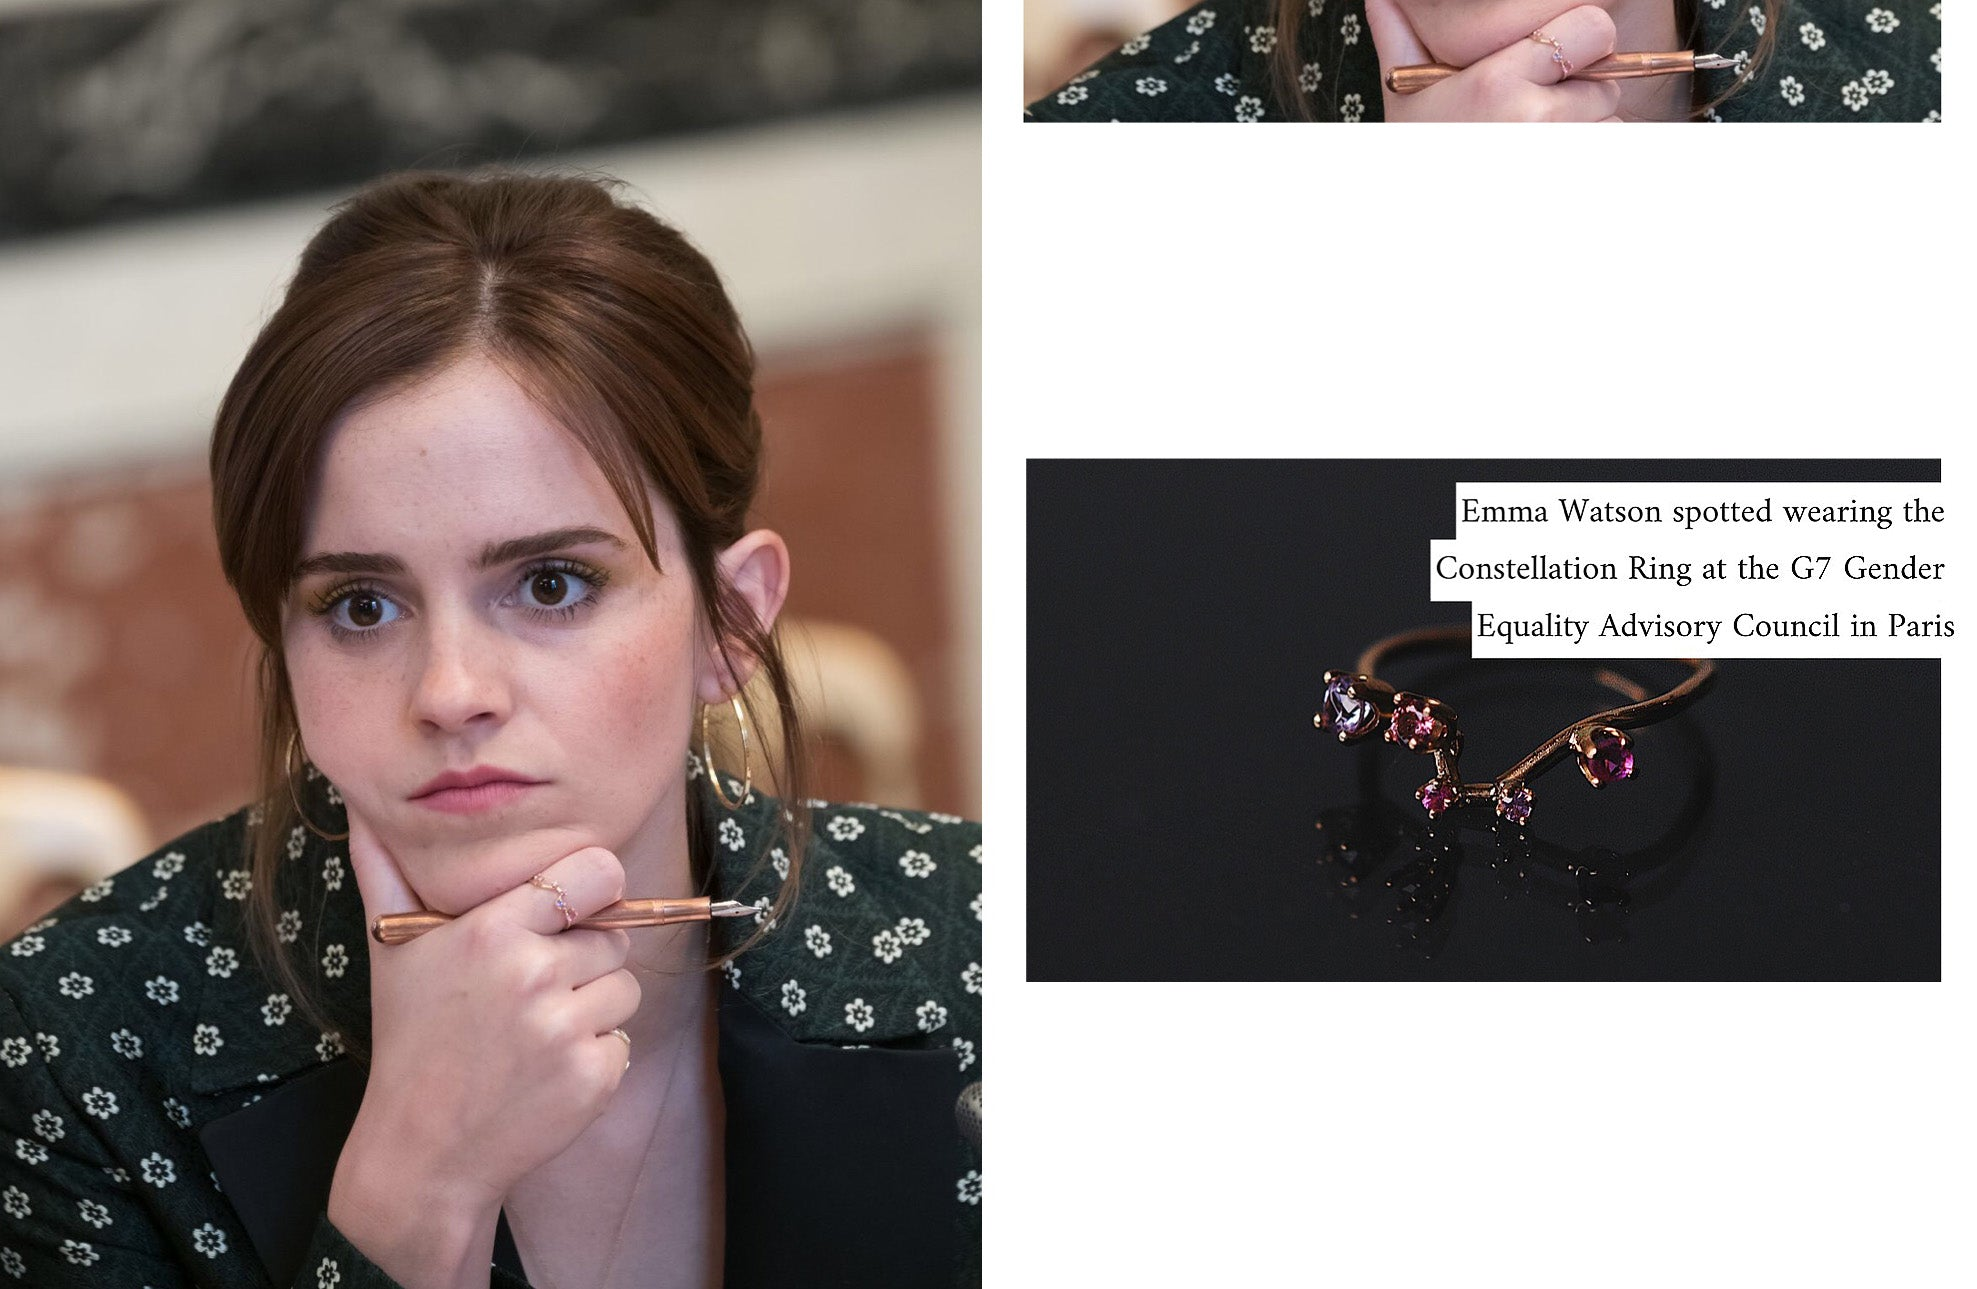 Emma Watson spotted wearing our Constellation Ring